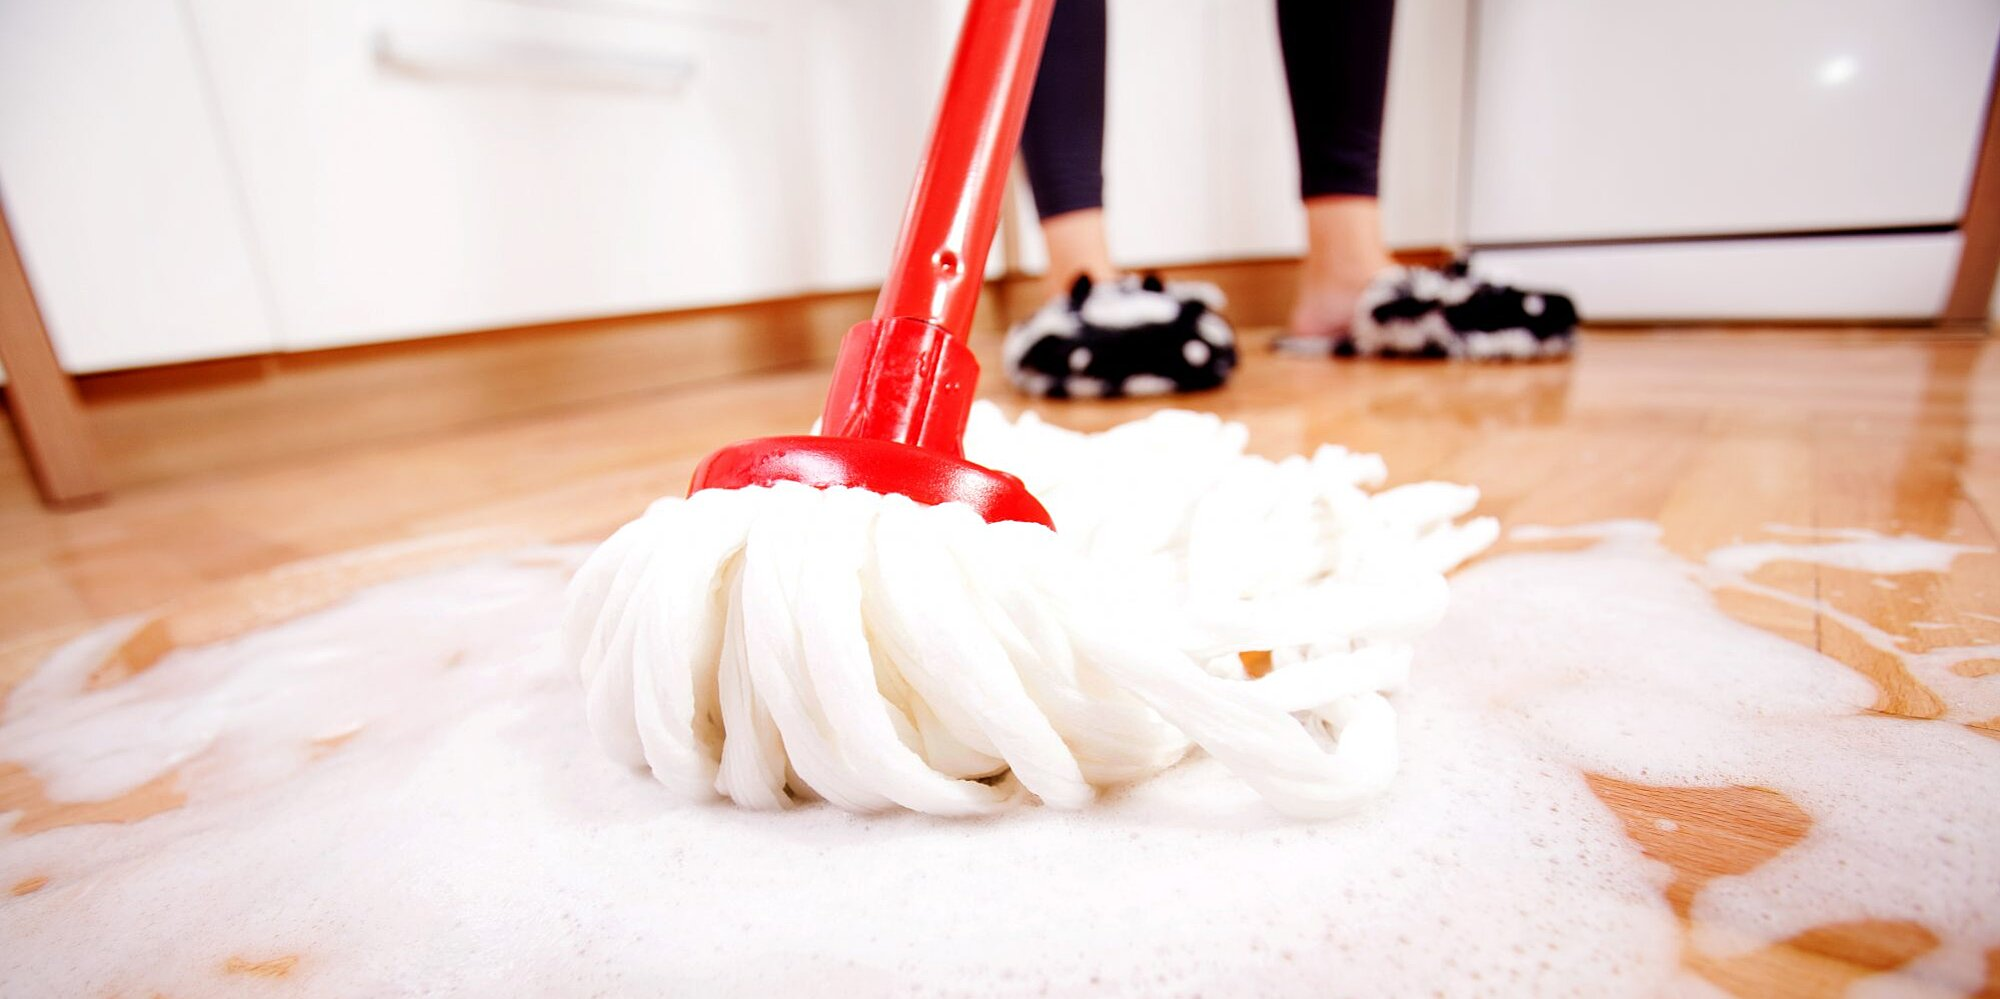 how to mop your floors using laundry detergent